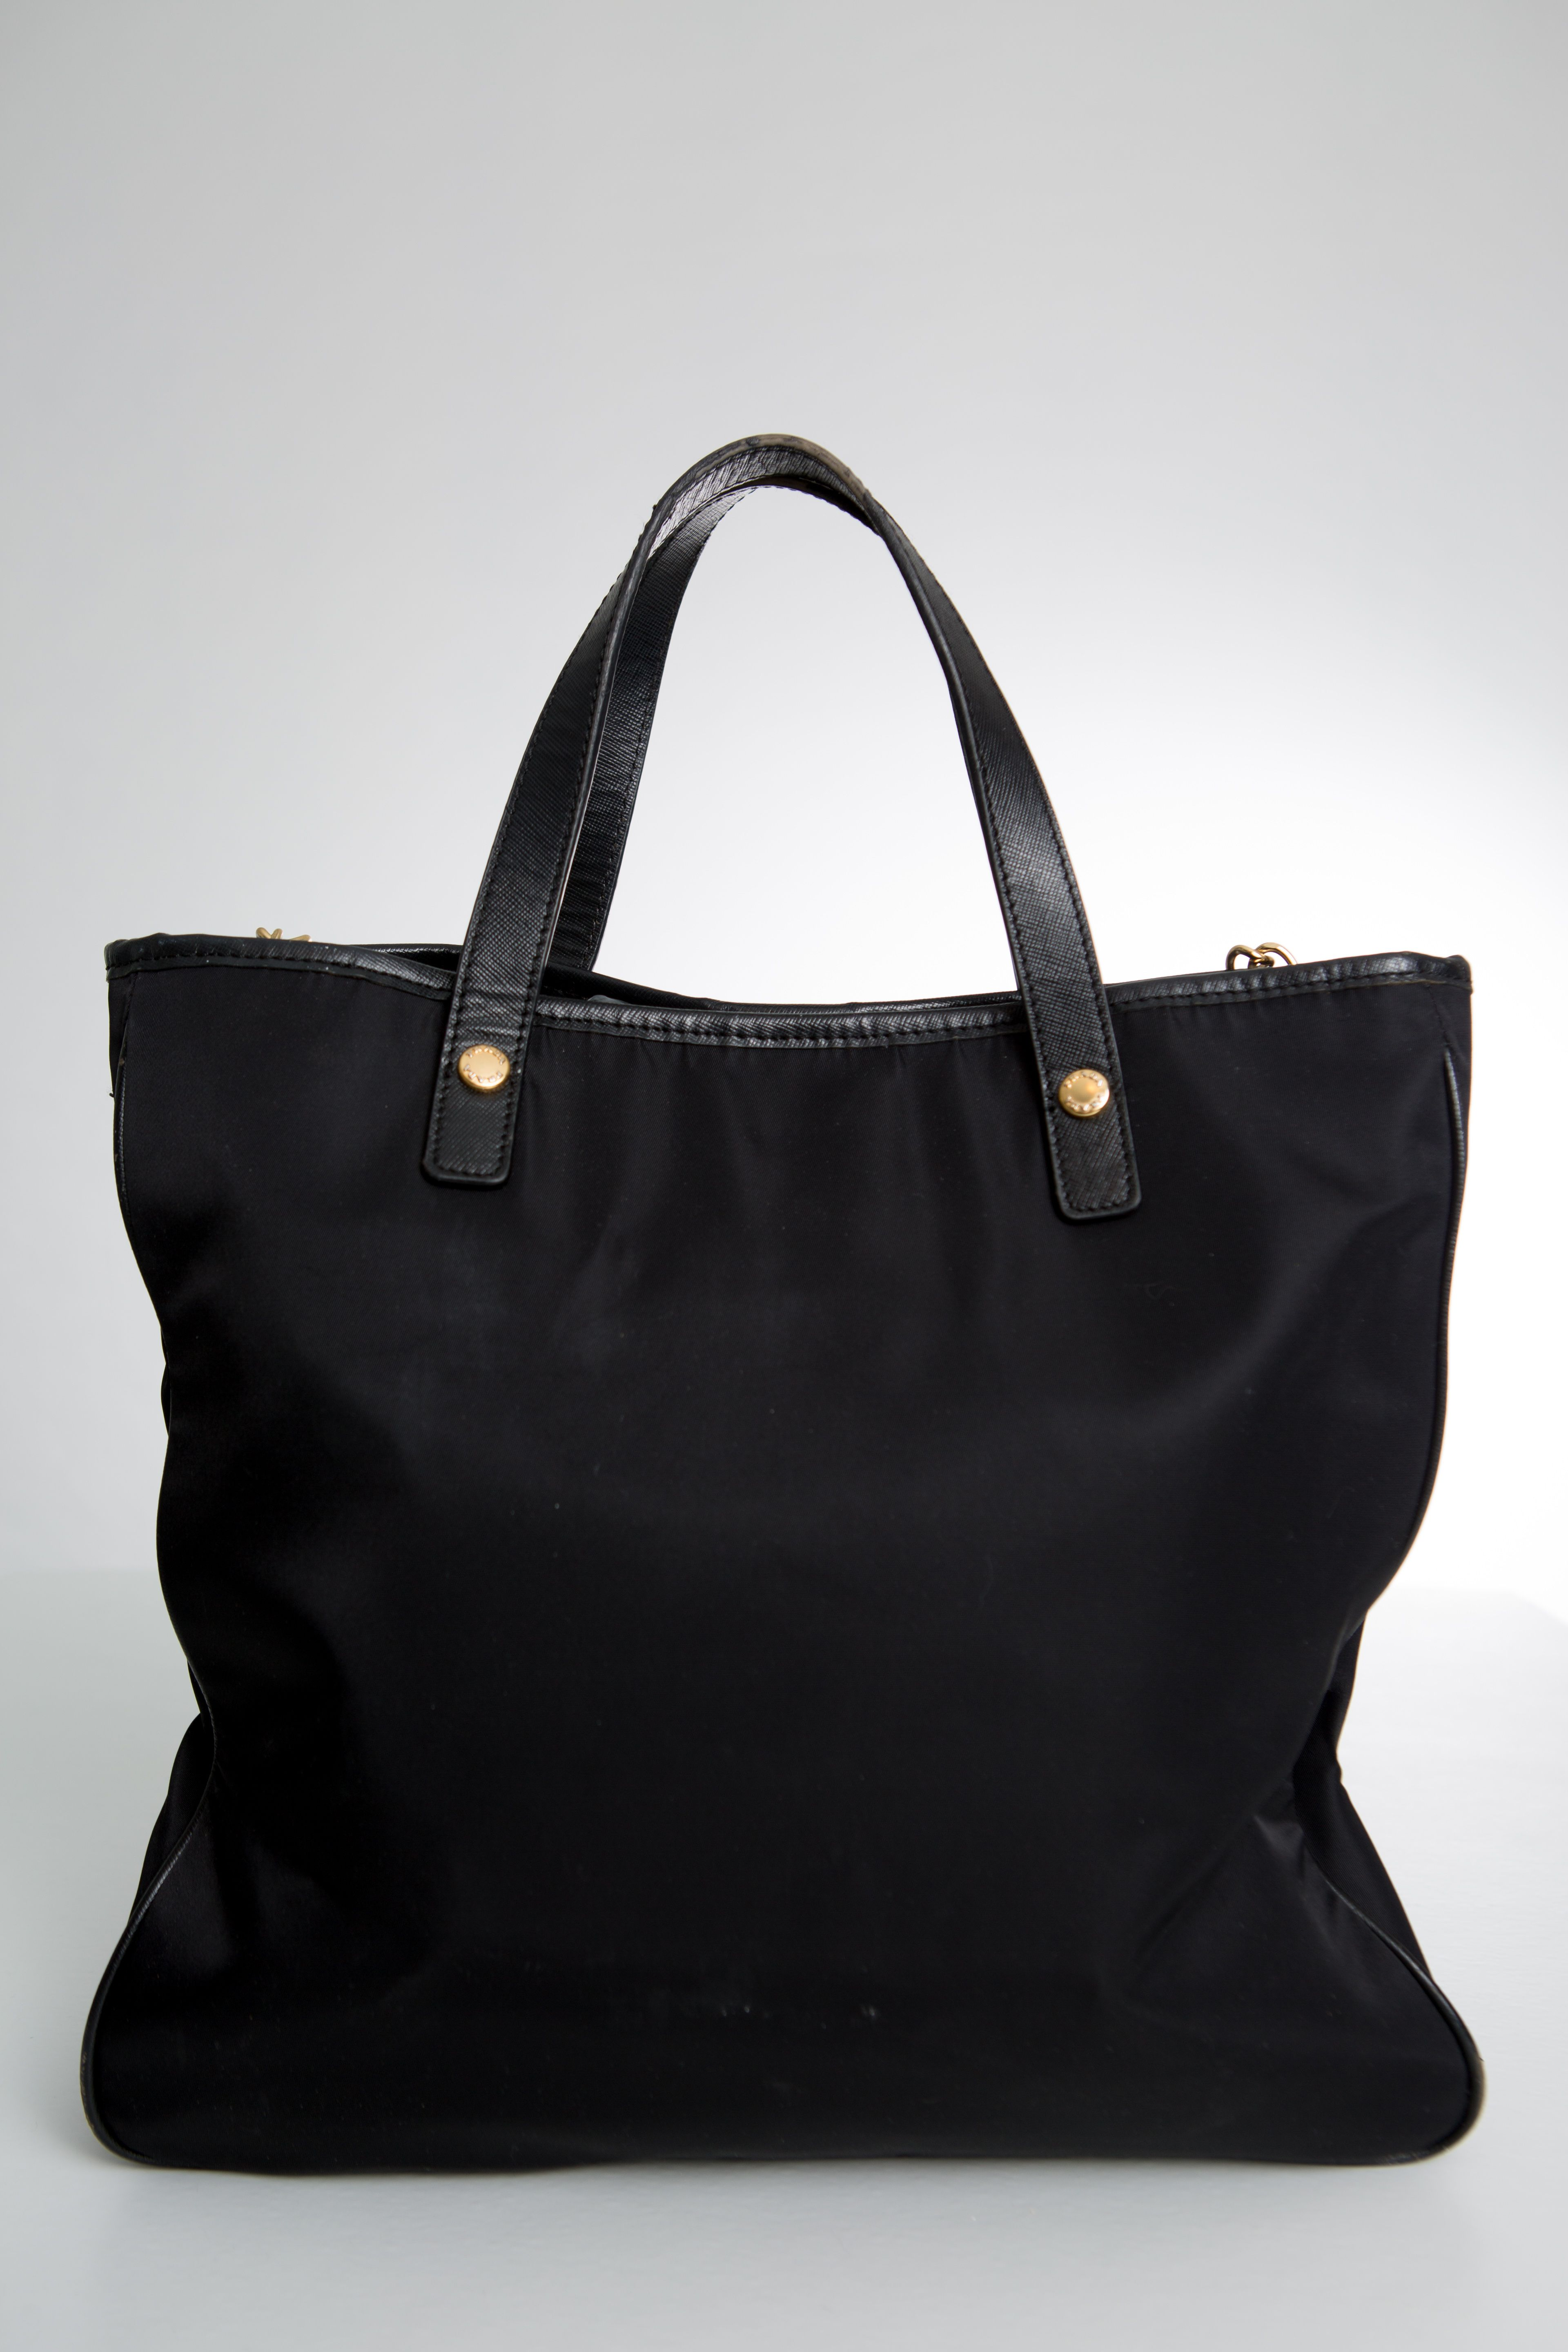 2b00e1a8f5f9 Prada-Milano-Black-Nylon-Tote-Bag-Shoulder-Bag-Cross-Body  -Strap-Leather-Cut-Out-Gold-Lettering-LE-0812